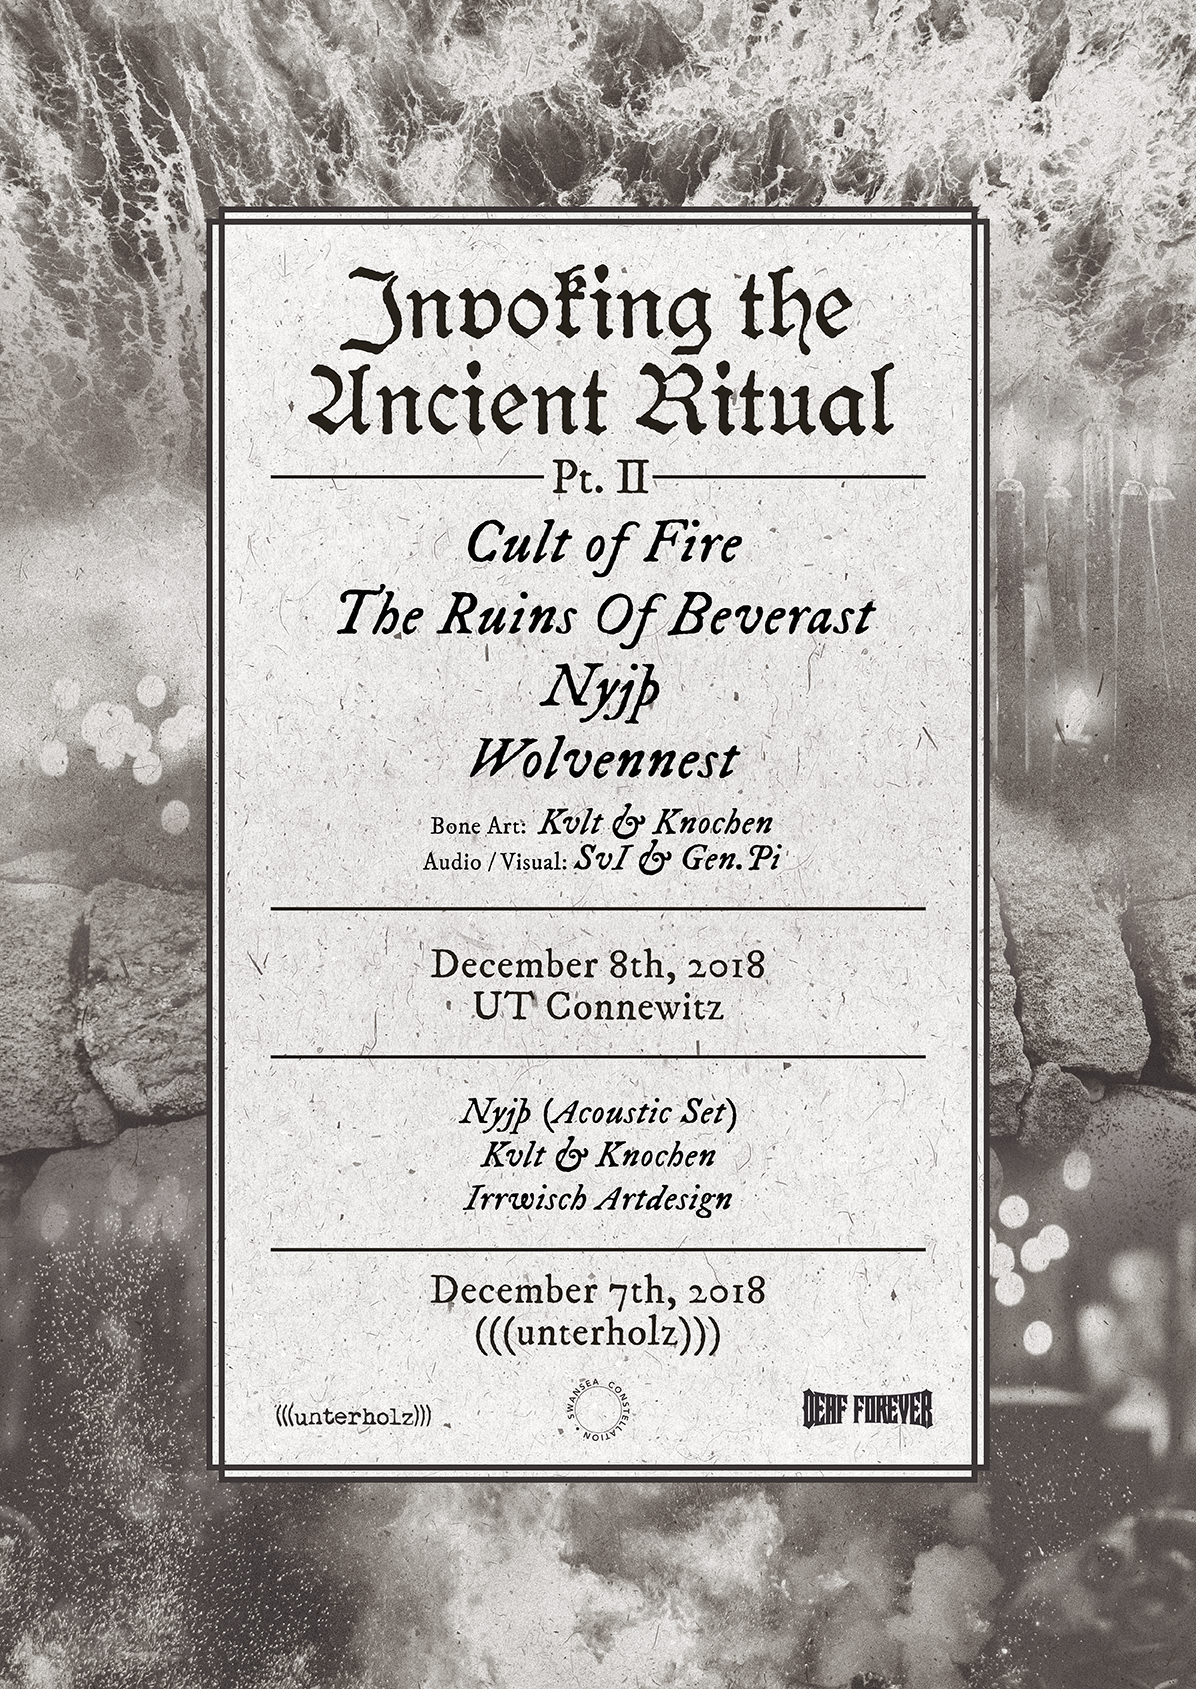 Invoking the Ancient Rituals Festival |08-12-2018